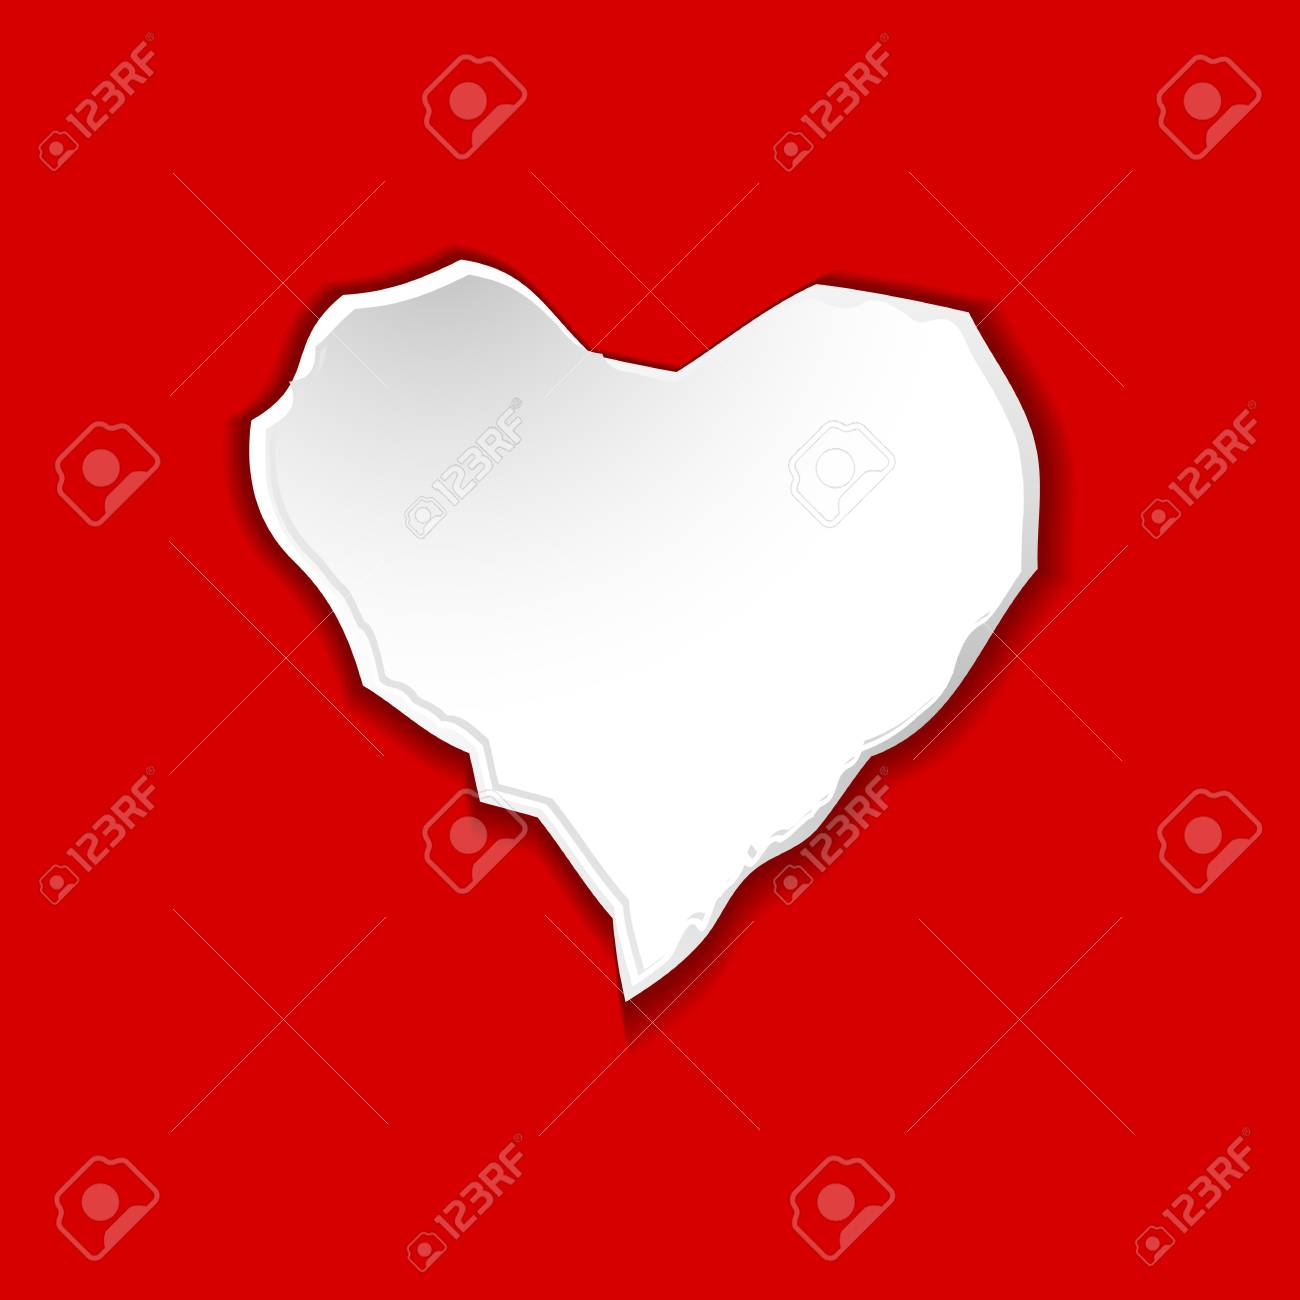 illustration of torn paper in shape of heart Stock Photo - 11275786